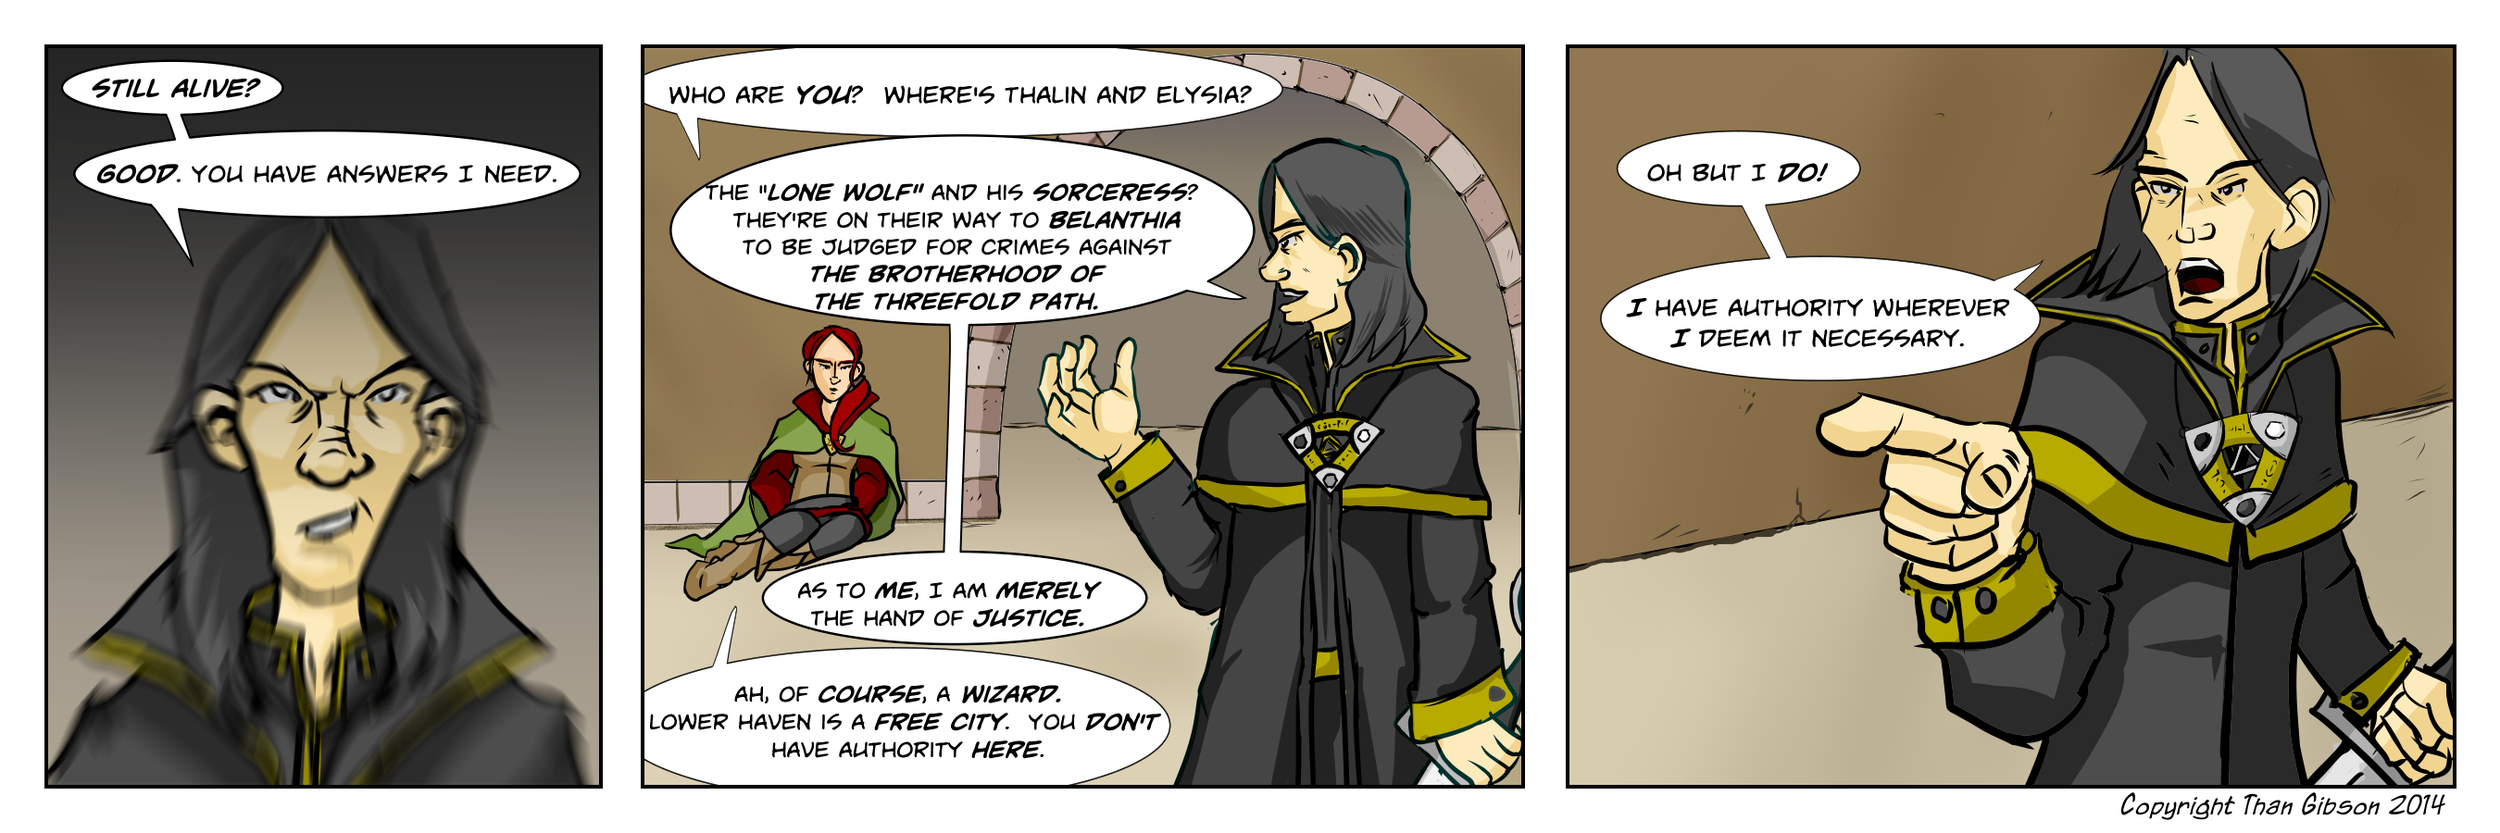 Strip 34 - Click image for larger view!